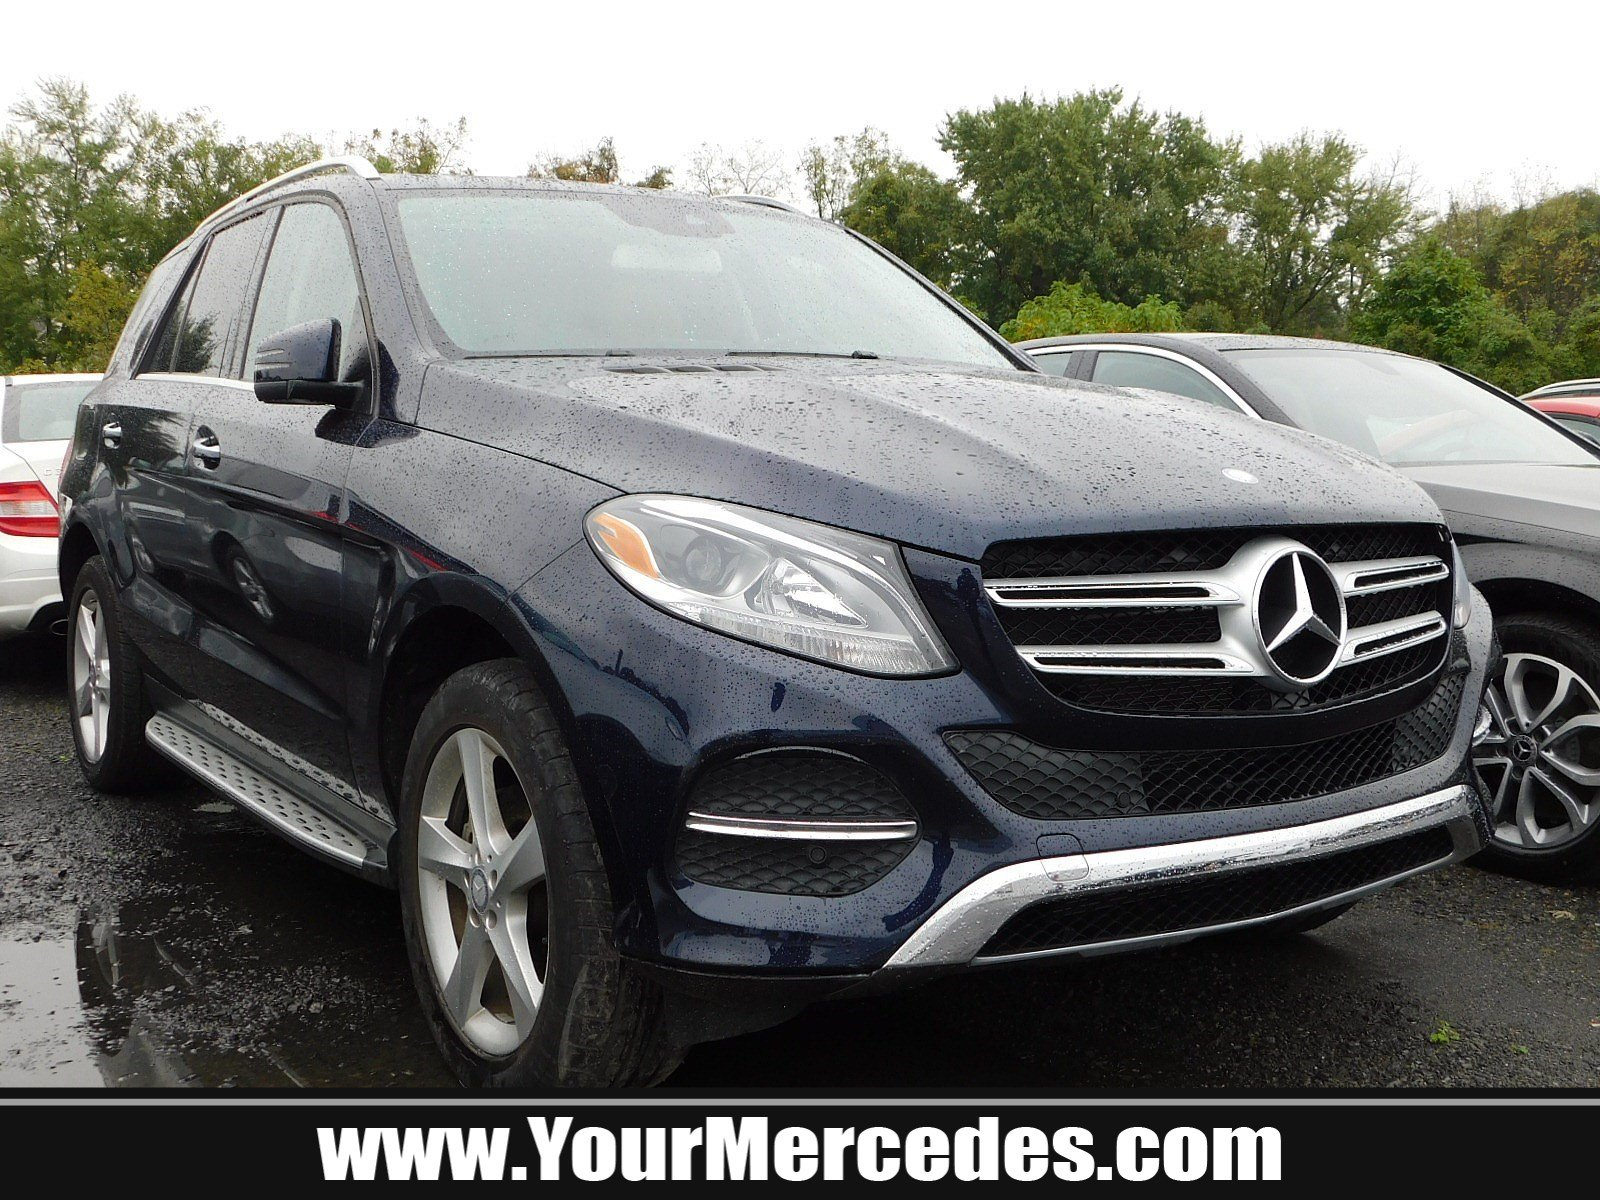 Pre Owned 2016 Mercedes Benz GLE GLE 350 SUV in Fort Washington